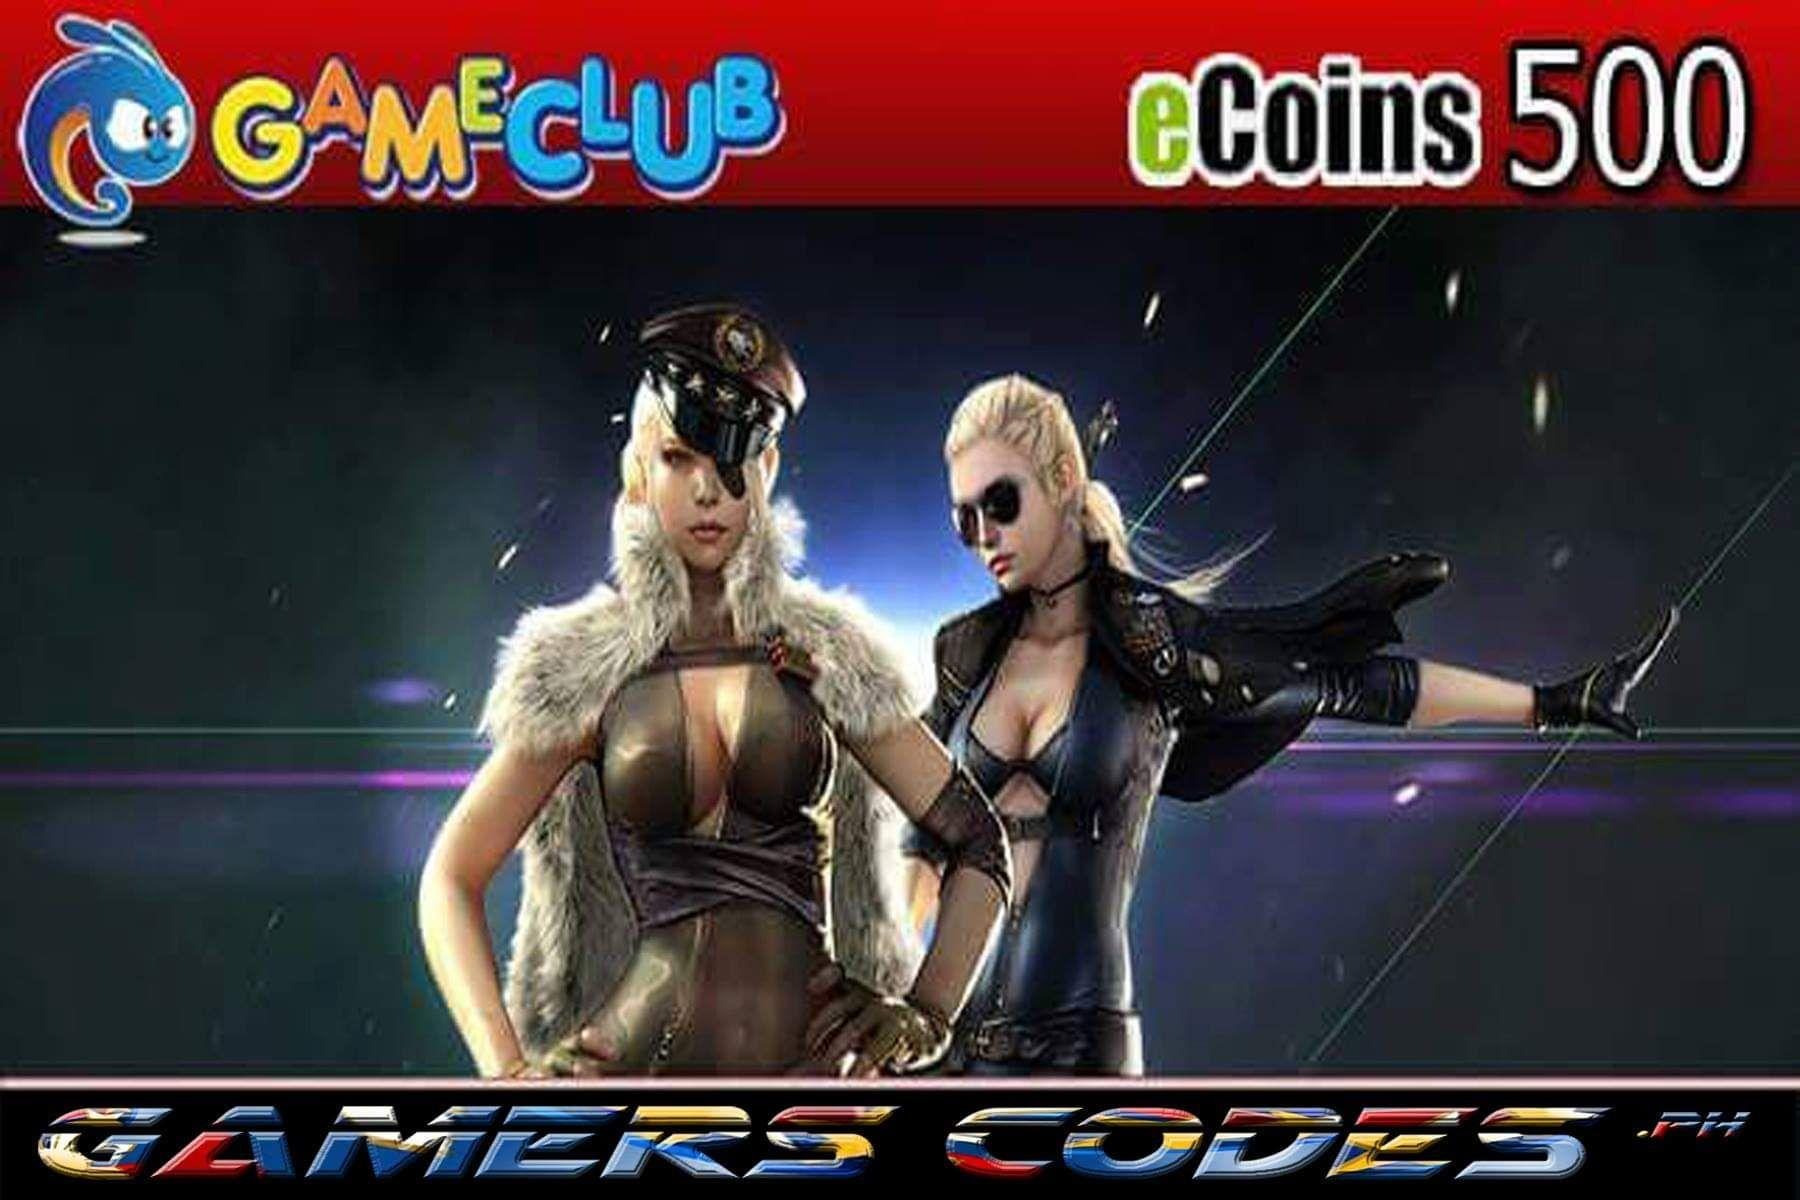 Philippines | Where to sell Gameclub ecoins 500 check price - Only ₱444